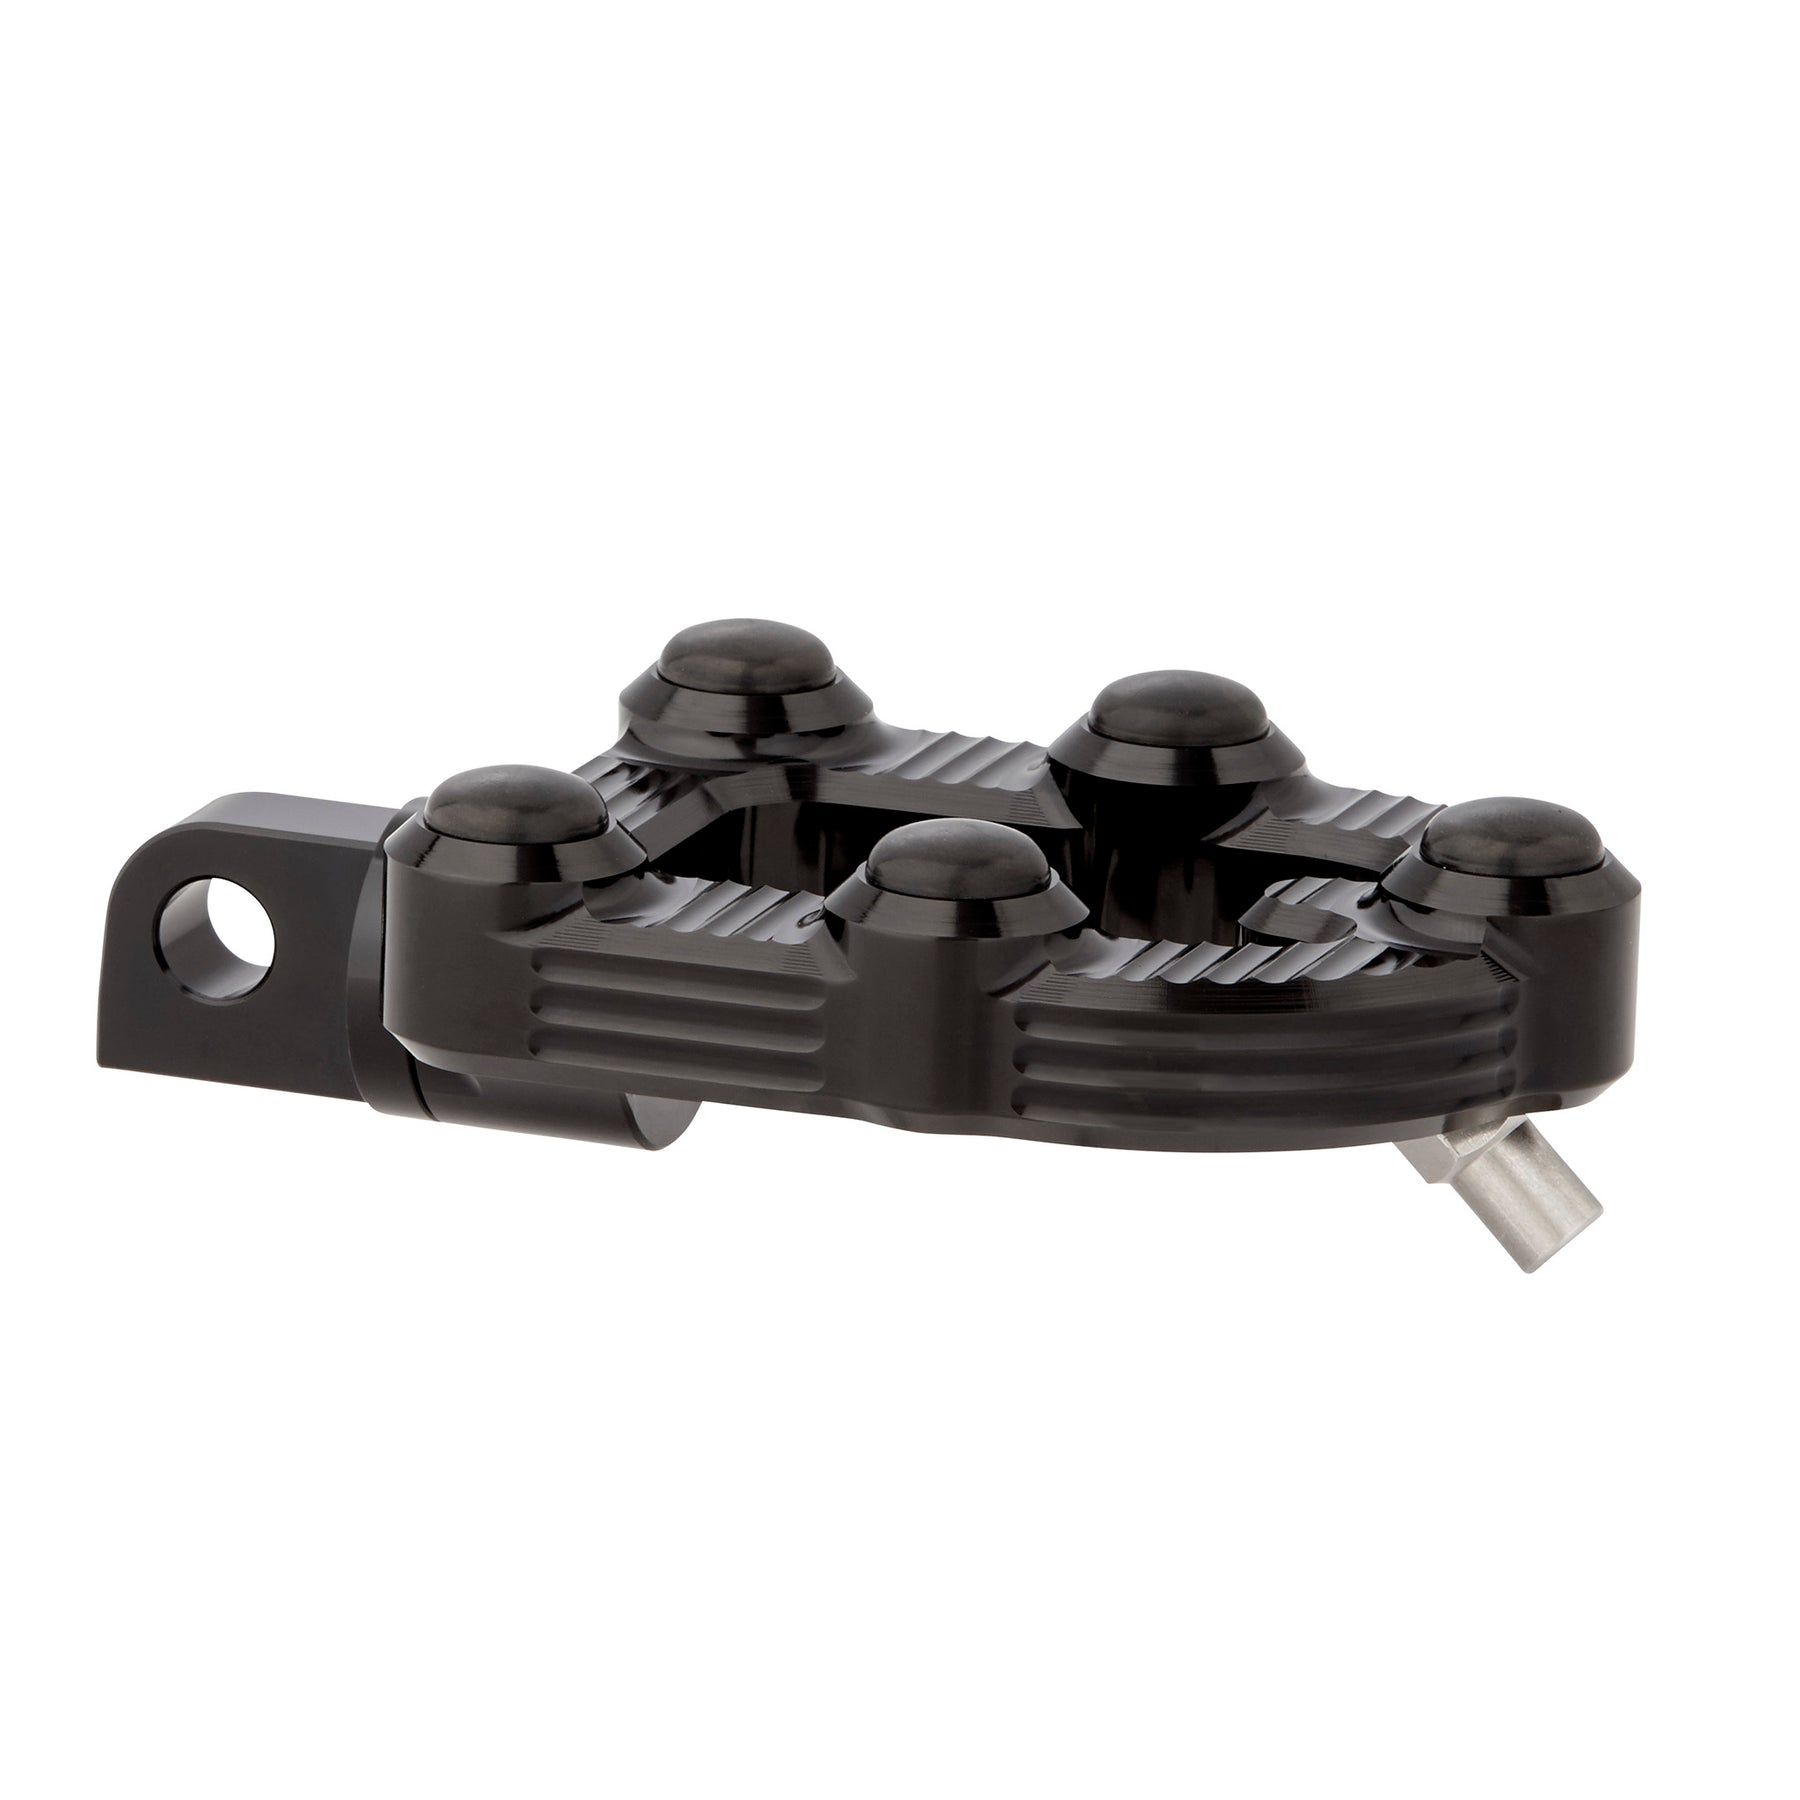 Ness-MX Footpegs, Black